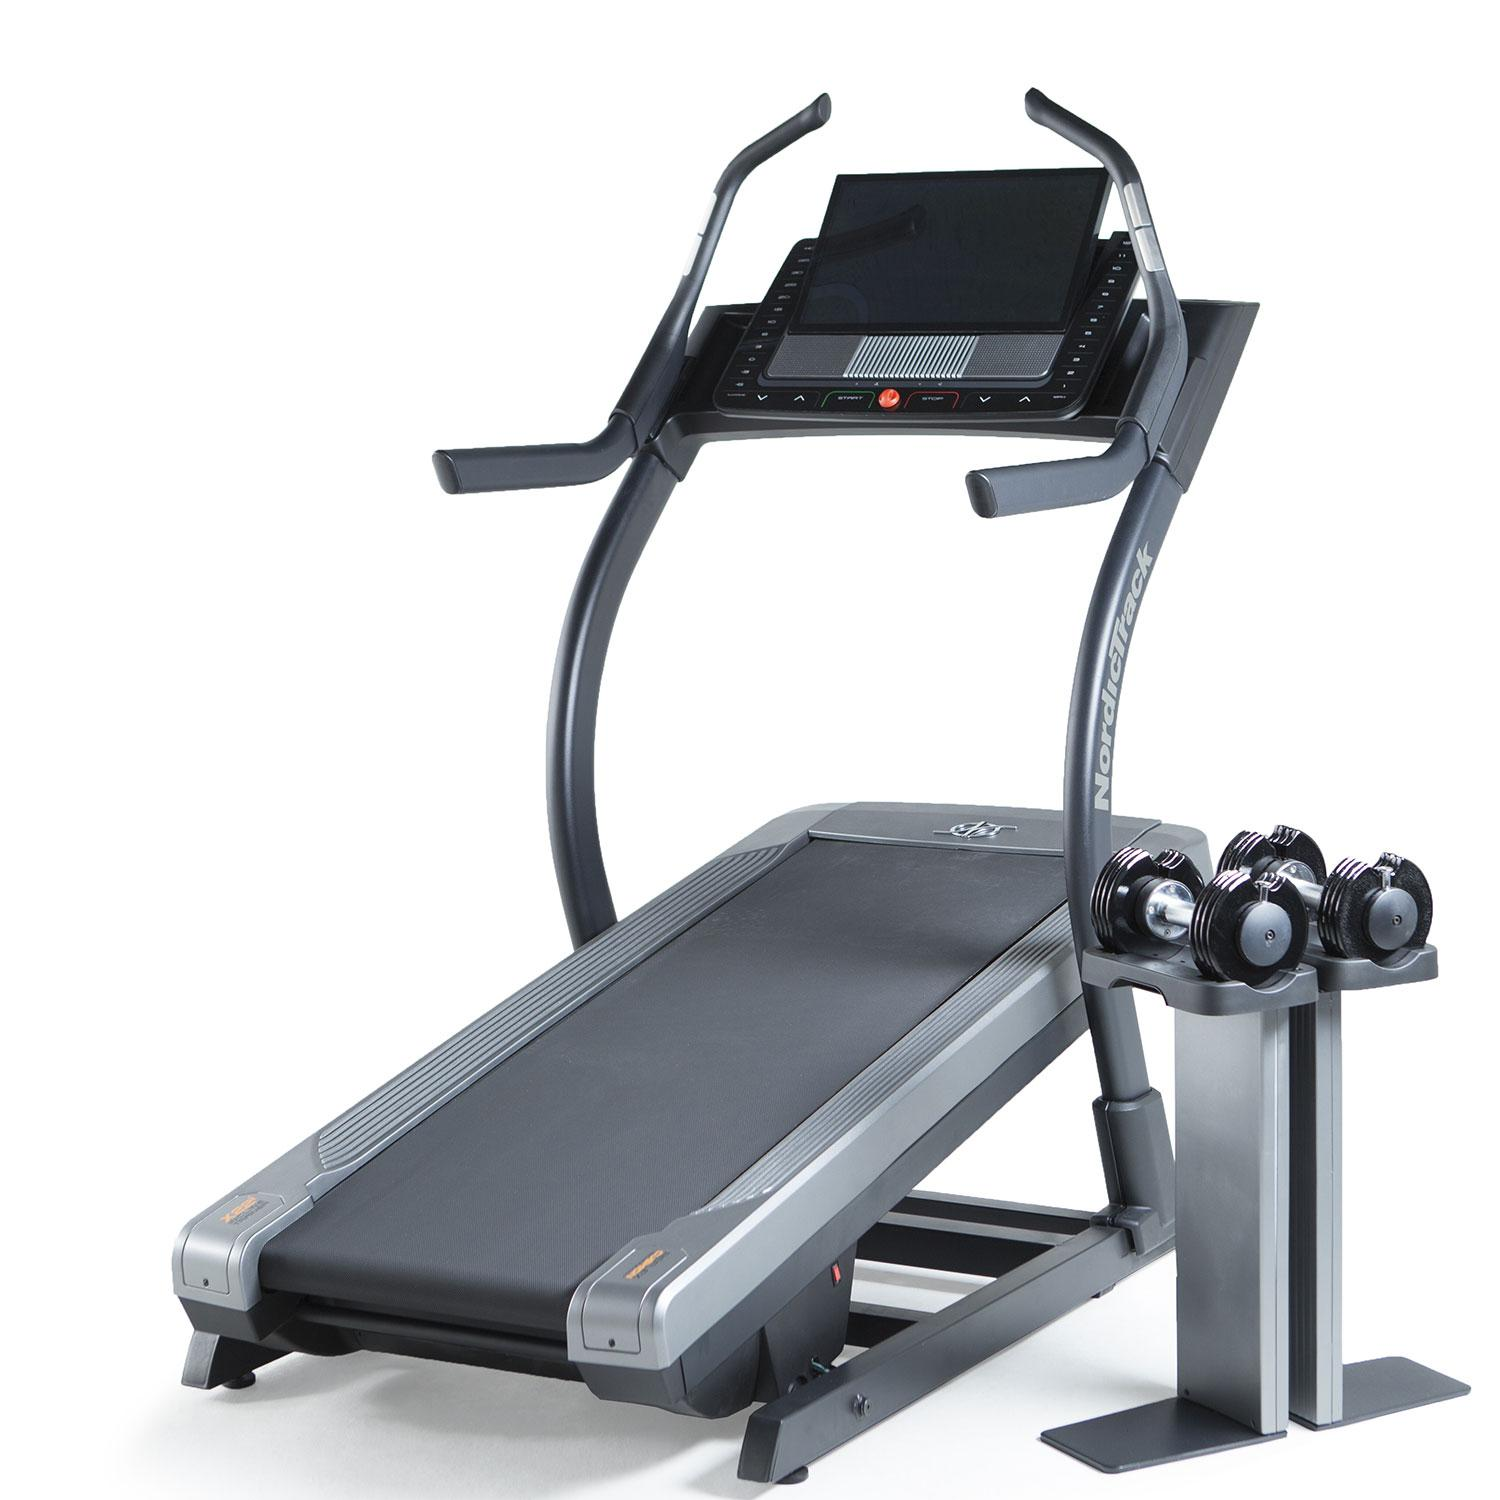 Беговая дорожка NordicTrack Incline Trainer X22i, фото №2